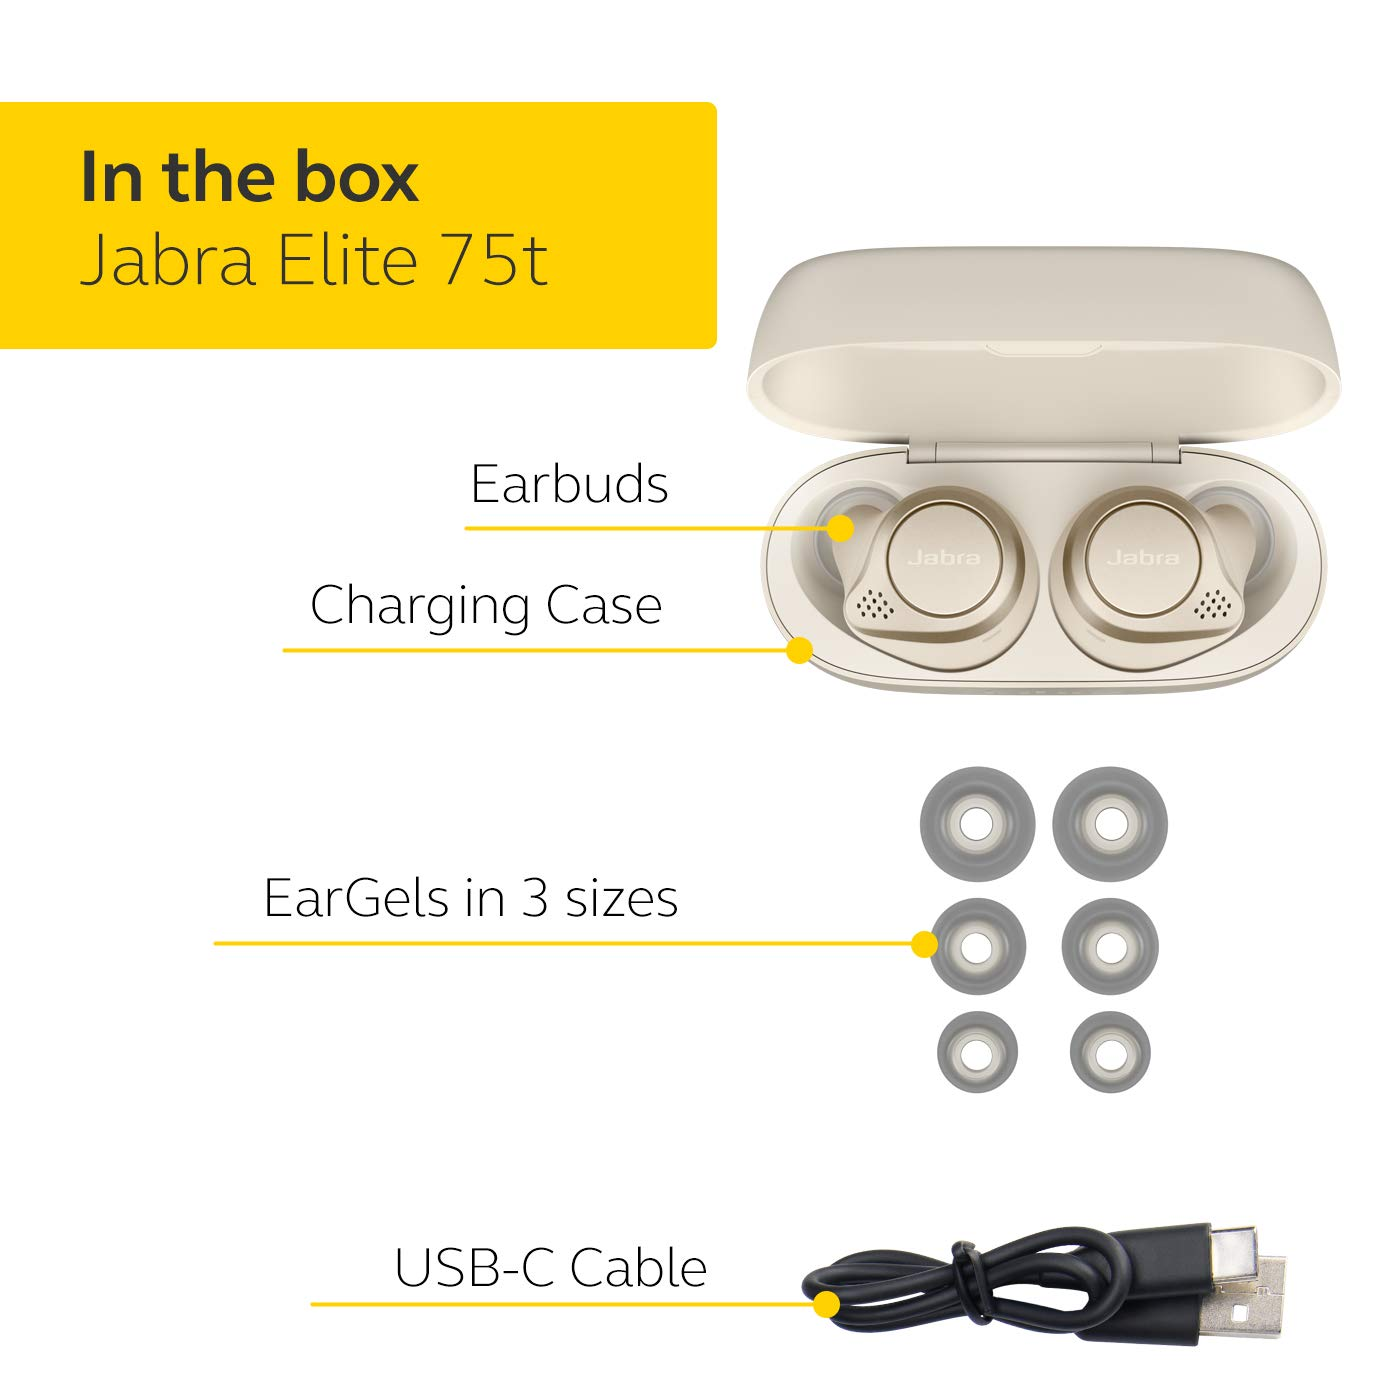 Jabra-Elite-75t-Voice-Assistant-Enabled-True-Wireless-earbuds-with-Charging-Case thumbnail 10